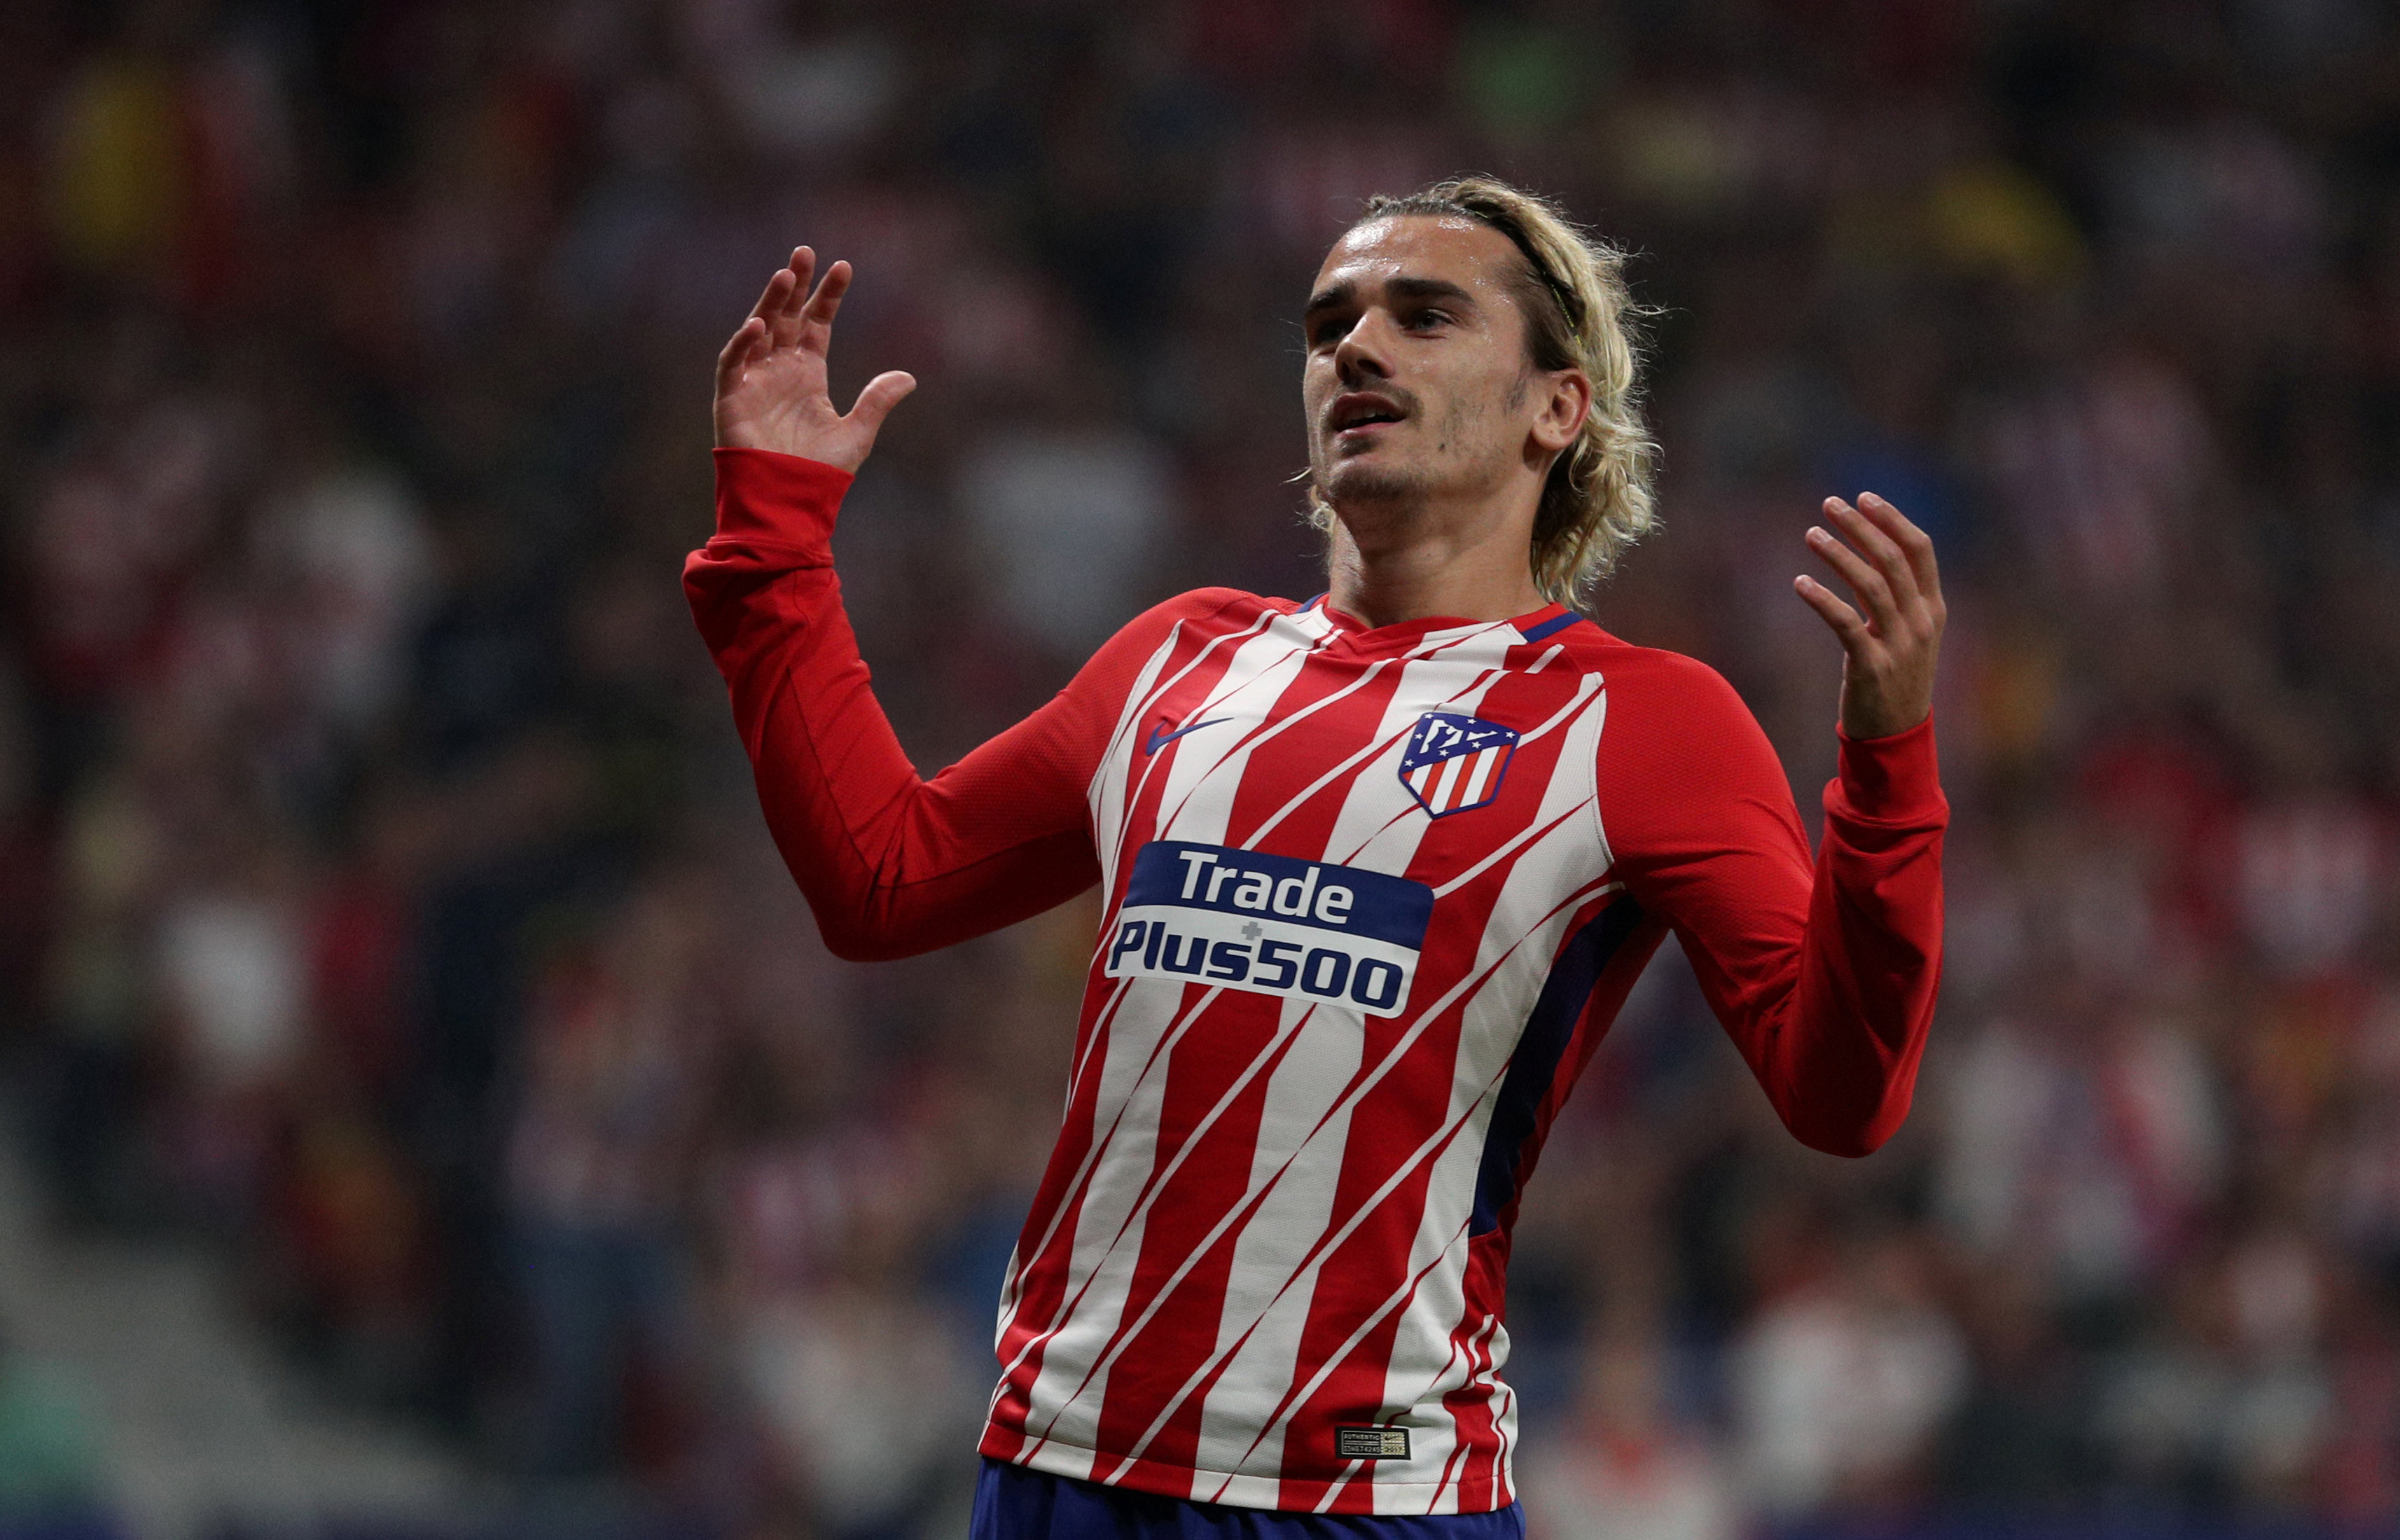 Football - Ligue des champions - Ligue des champions: Qarabag-Atlético Madrid en direct